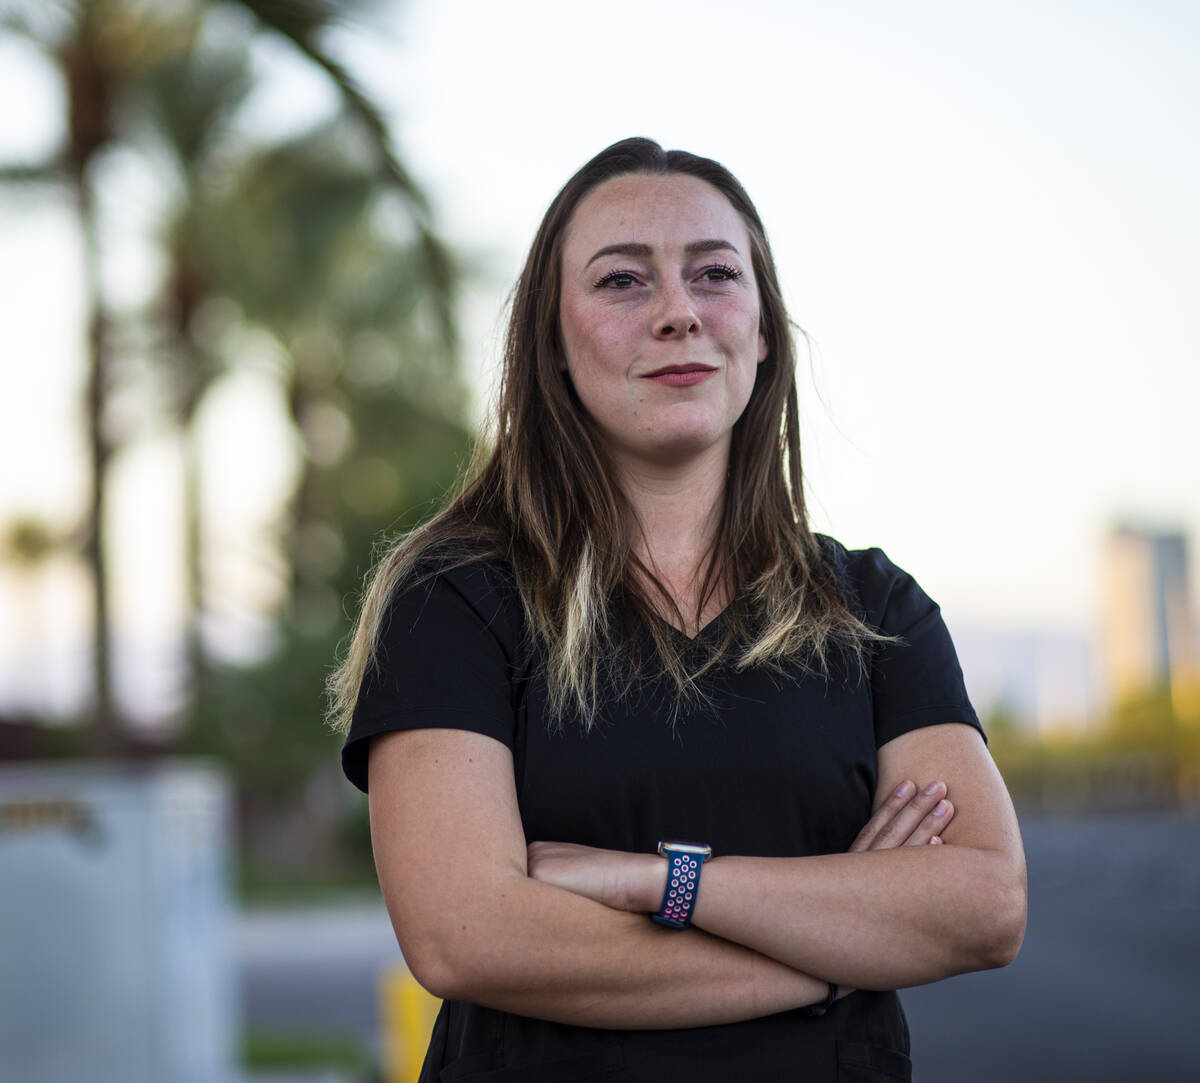 Liz Groesbeck, a third-year student in the Kirk Kerkorian School of Medicine at UNLV, poses for ...